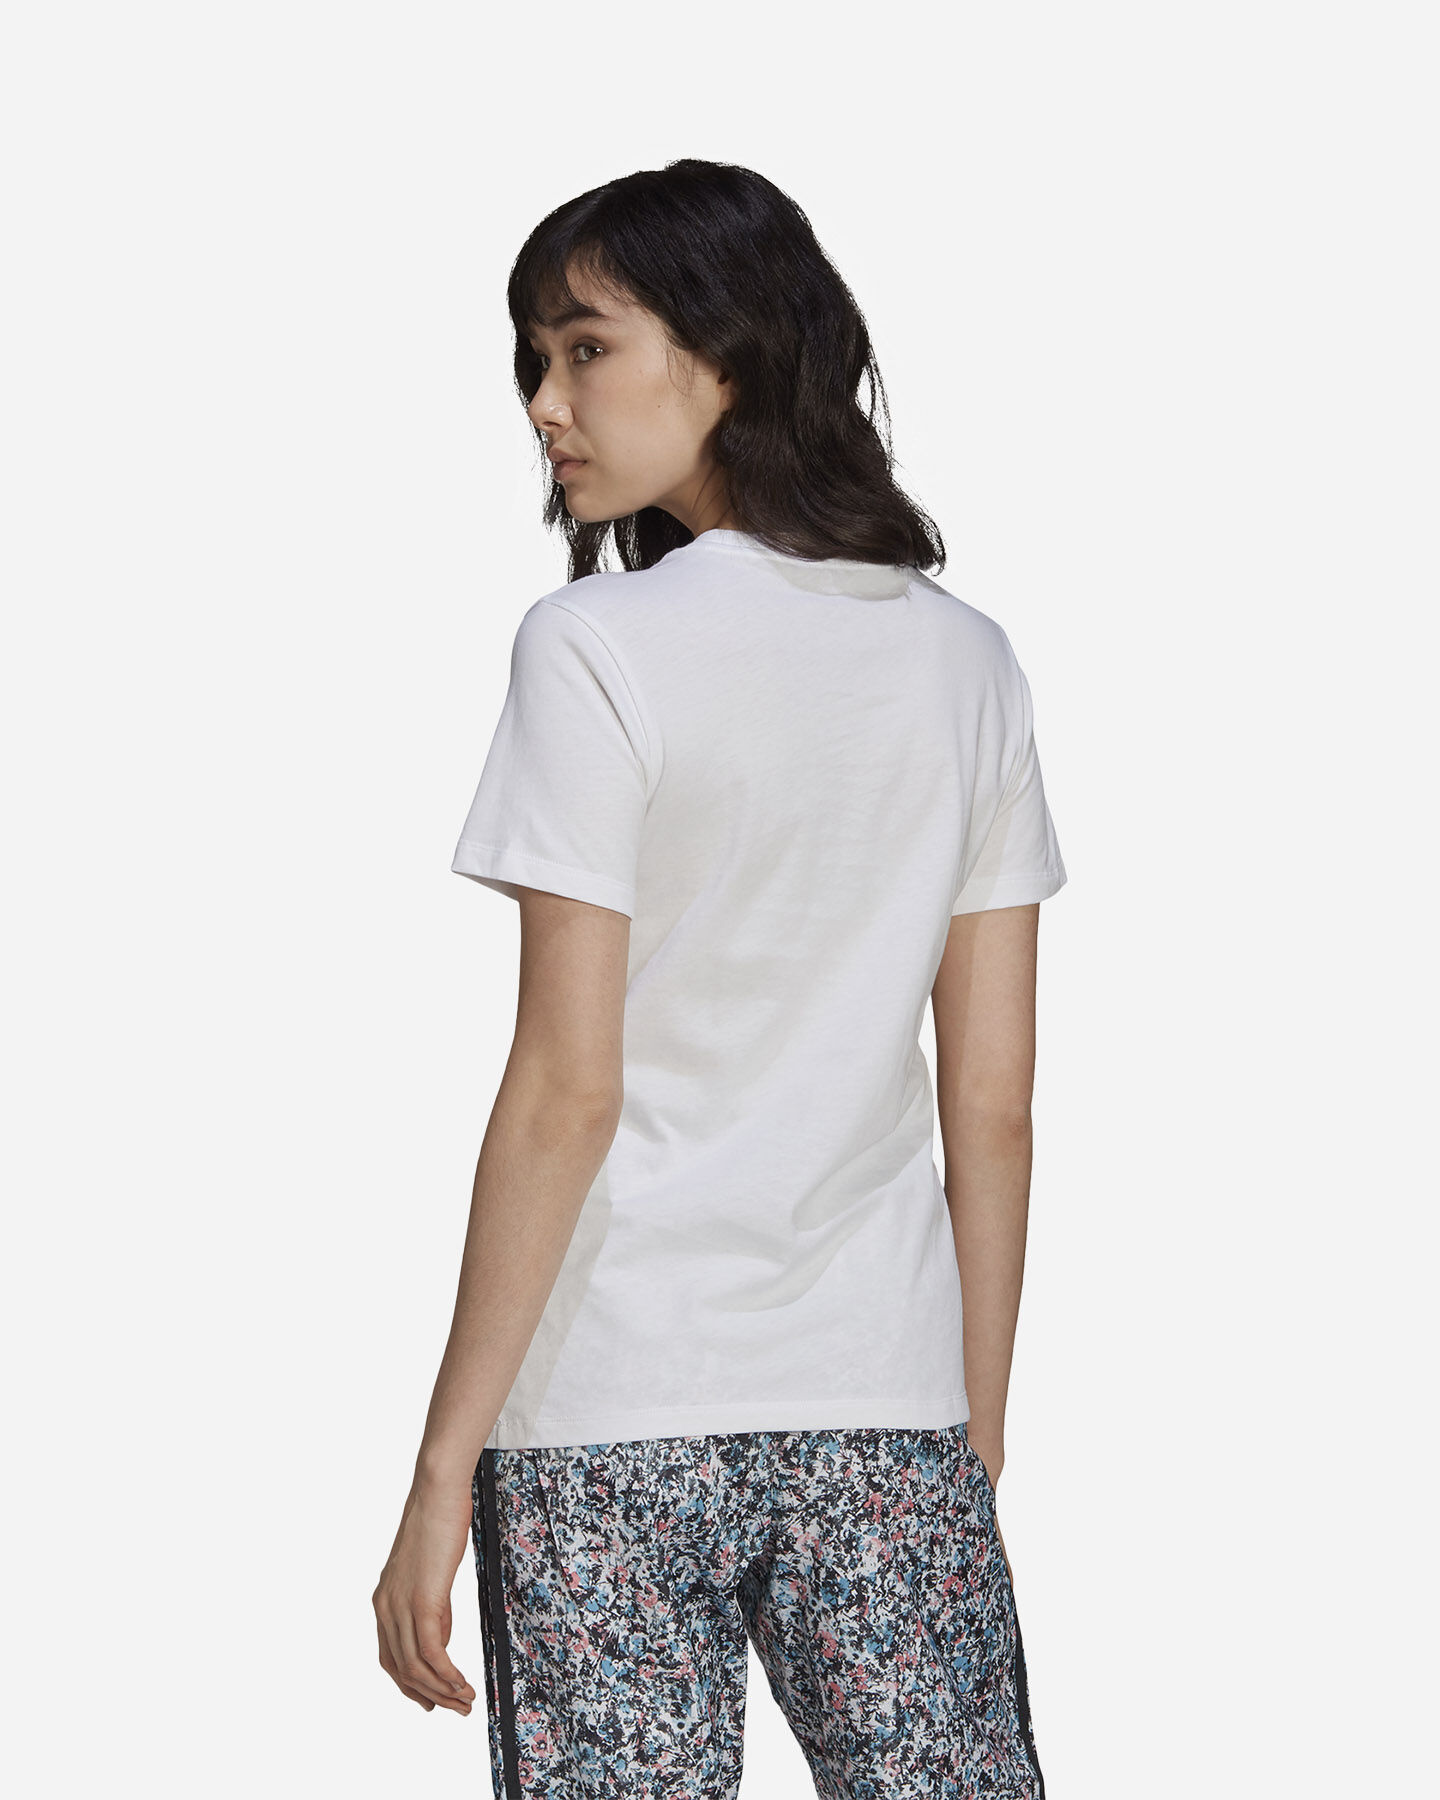 T-Shirt ADIDAS FLOWER W S5271153 scatto 3